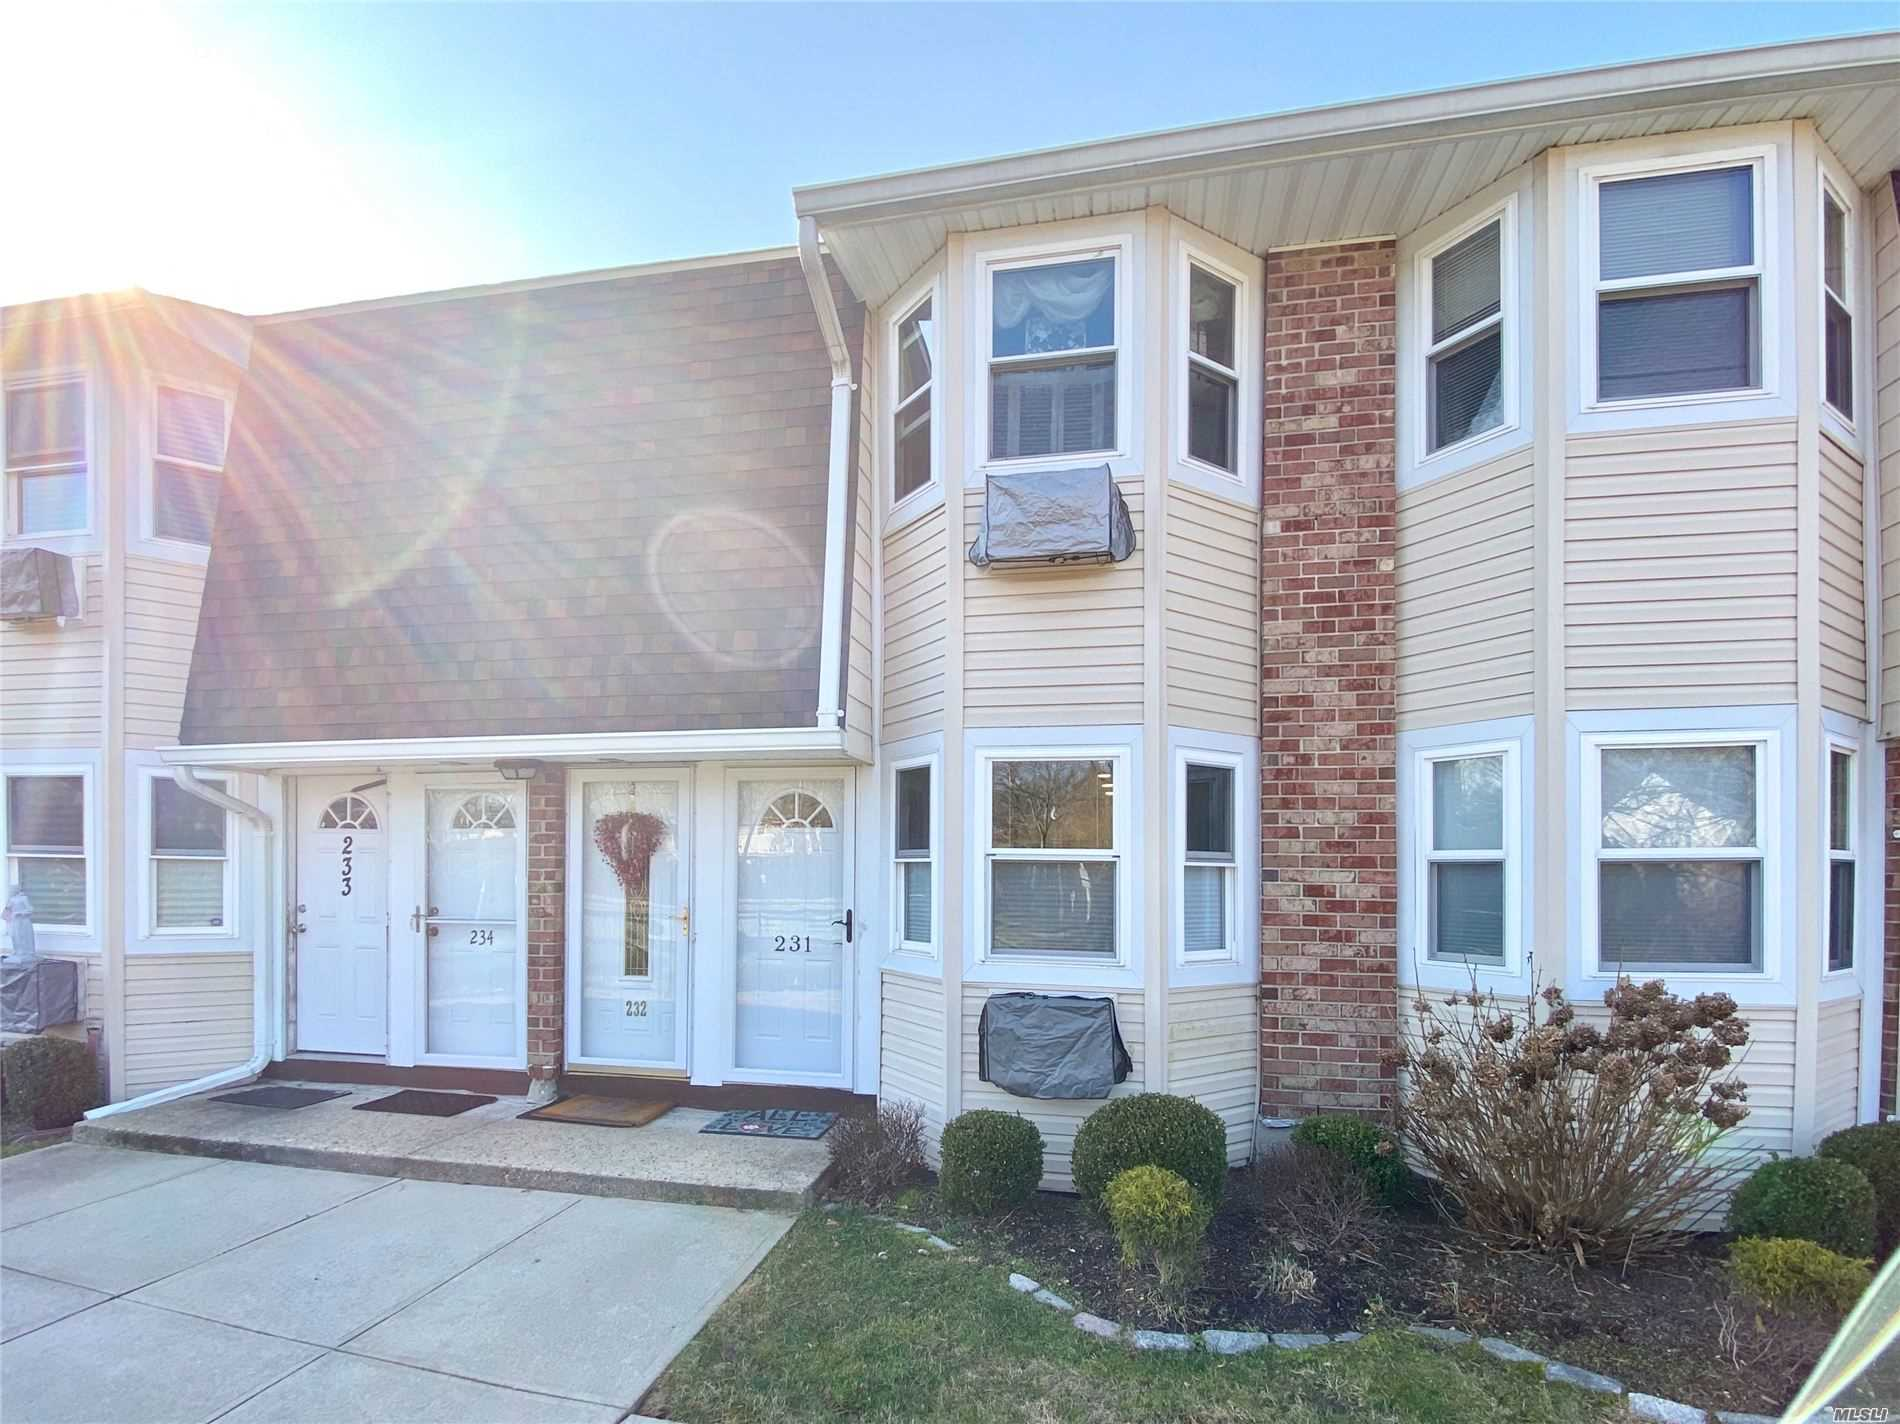 Property for sale at 231 Millard Ave, West Babylon,  New York 11704